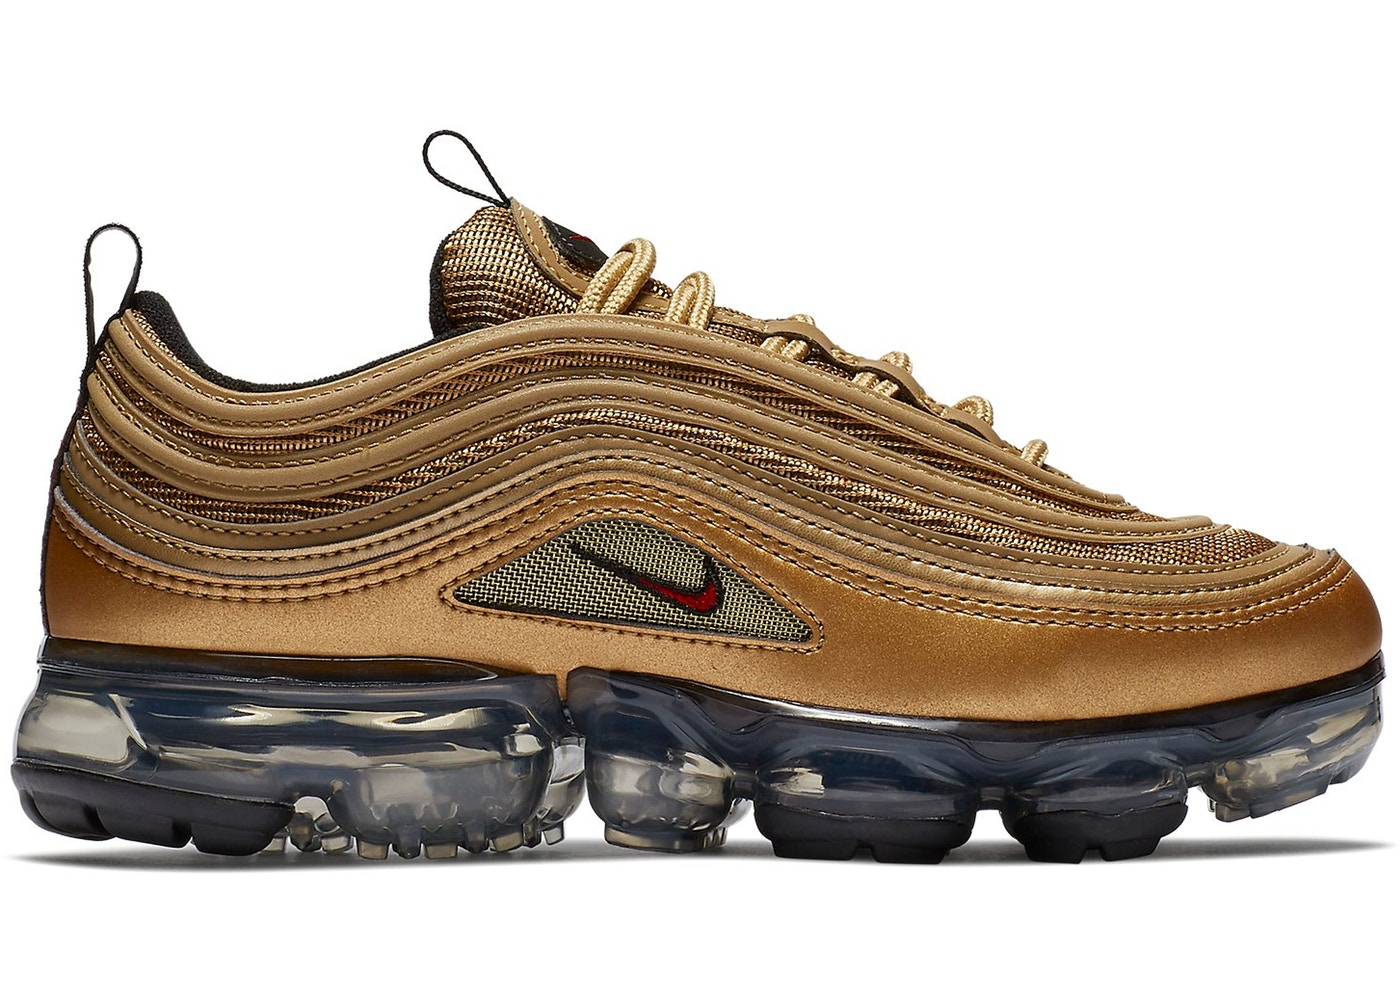 79077a3320 Sell. or Ask. Size: 7Y. View All Bids. Air VaporMax 97 Metallic ...